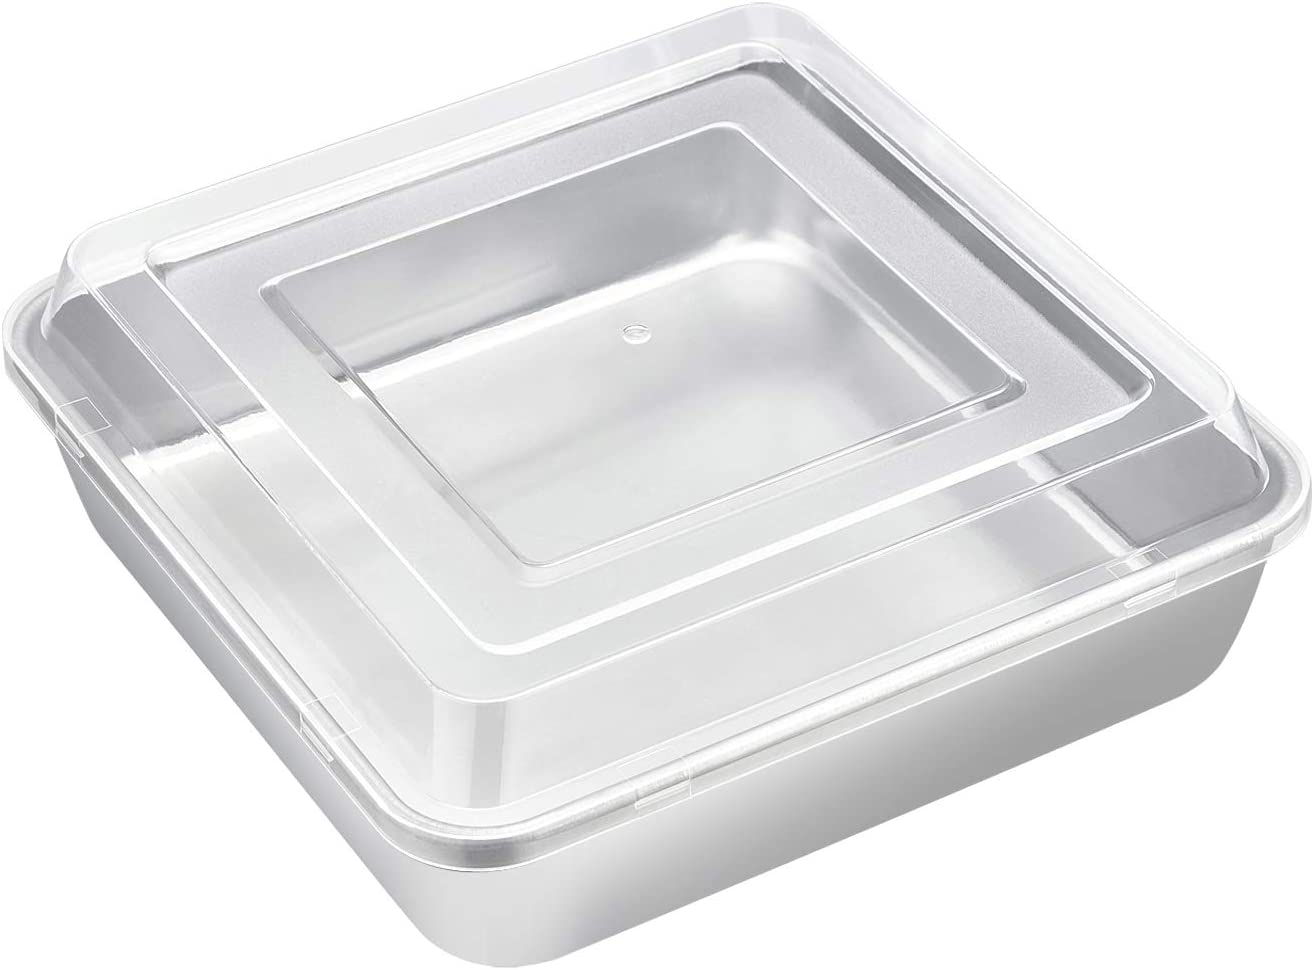 8 x 8-Inch Square Baking Pan with Lid, E-far Stainless Steel Square Cake Brownie Pan, Fit for Toaster Oven, Non-toxic & Healthy, Easy Storage & Dishwasher Safe - 2 Pieces(1 Pan + 1 Lid)